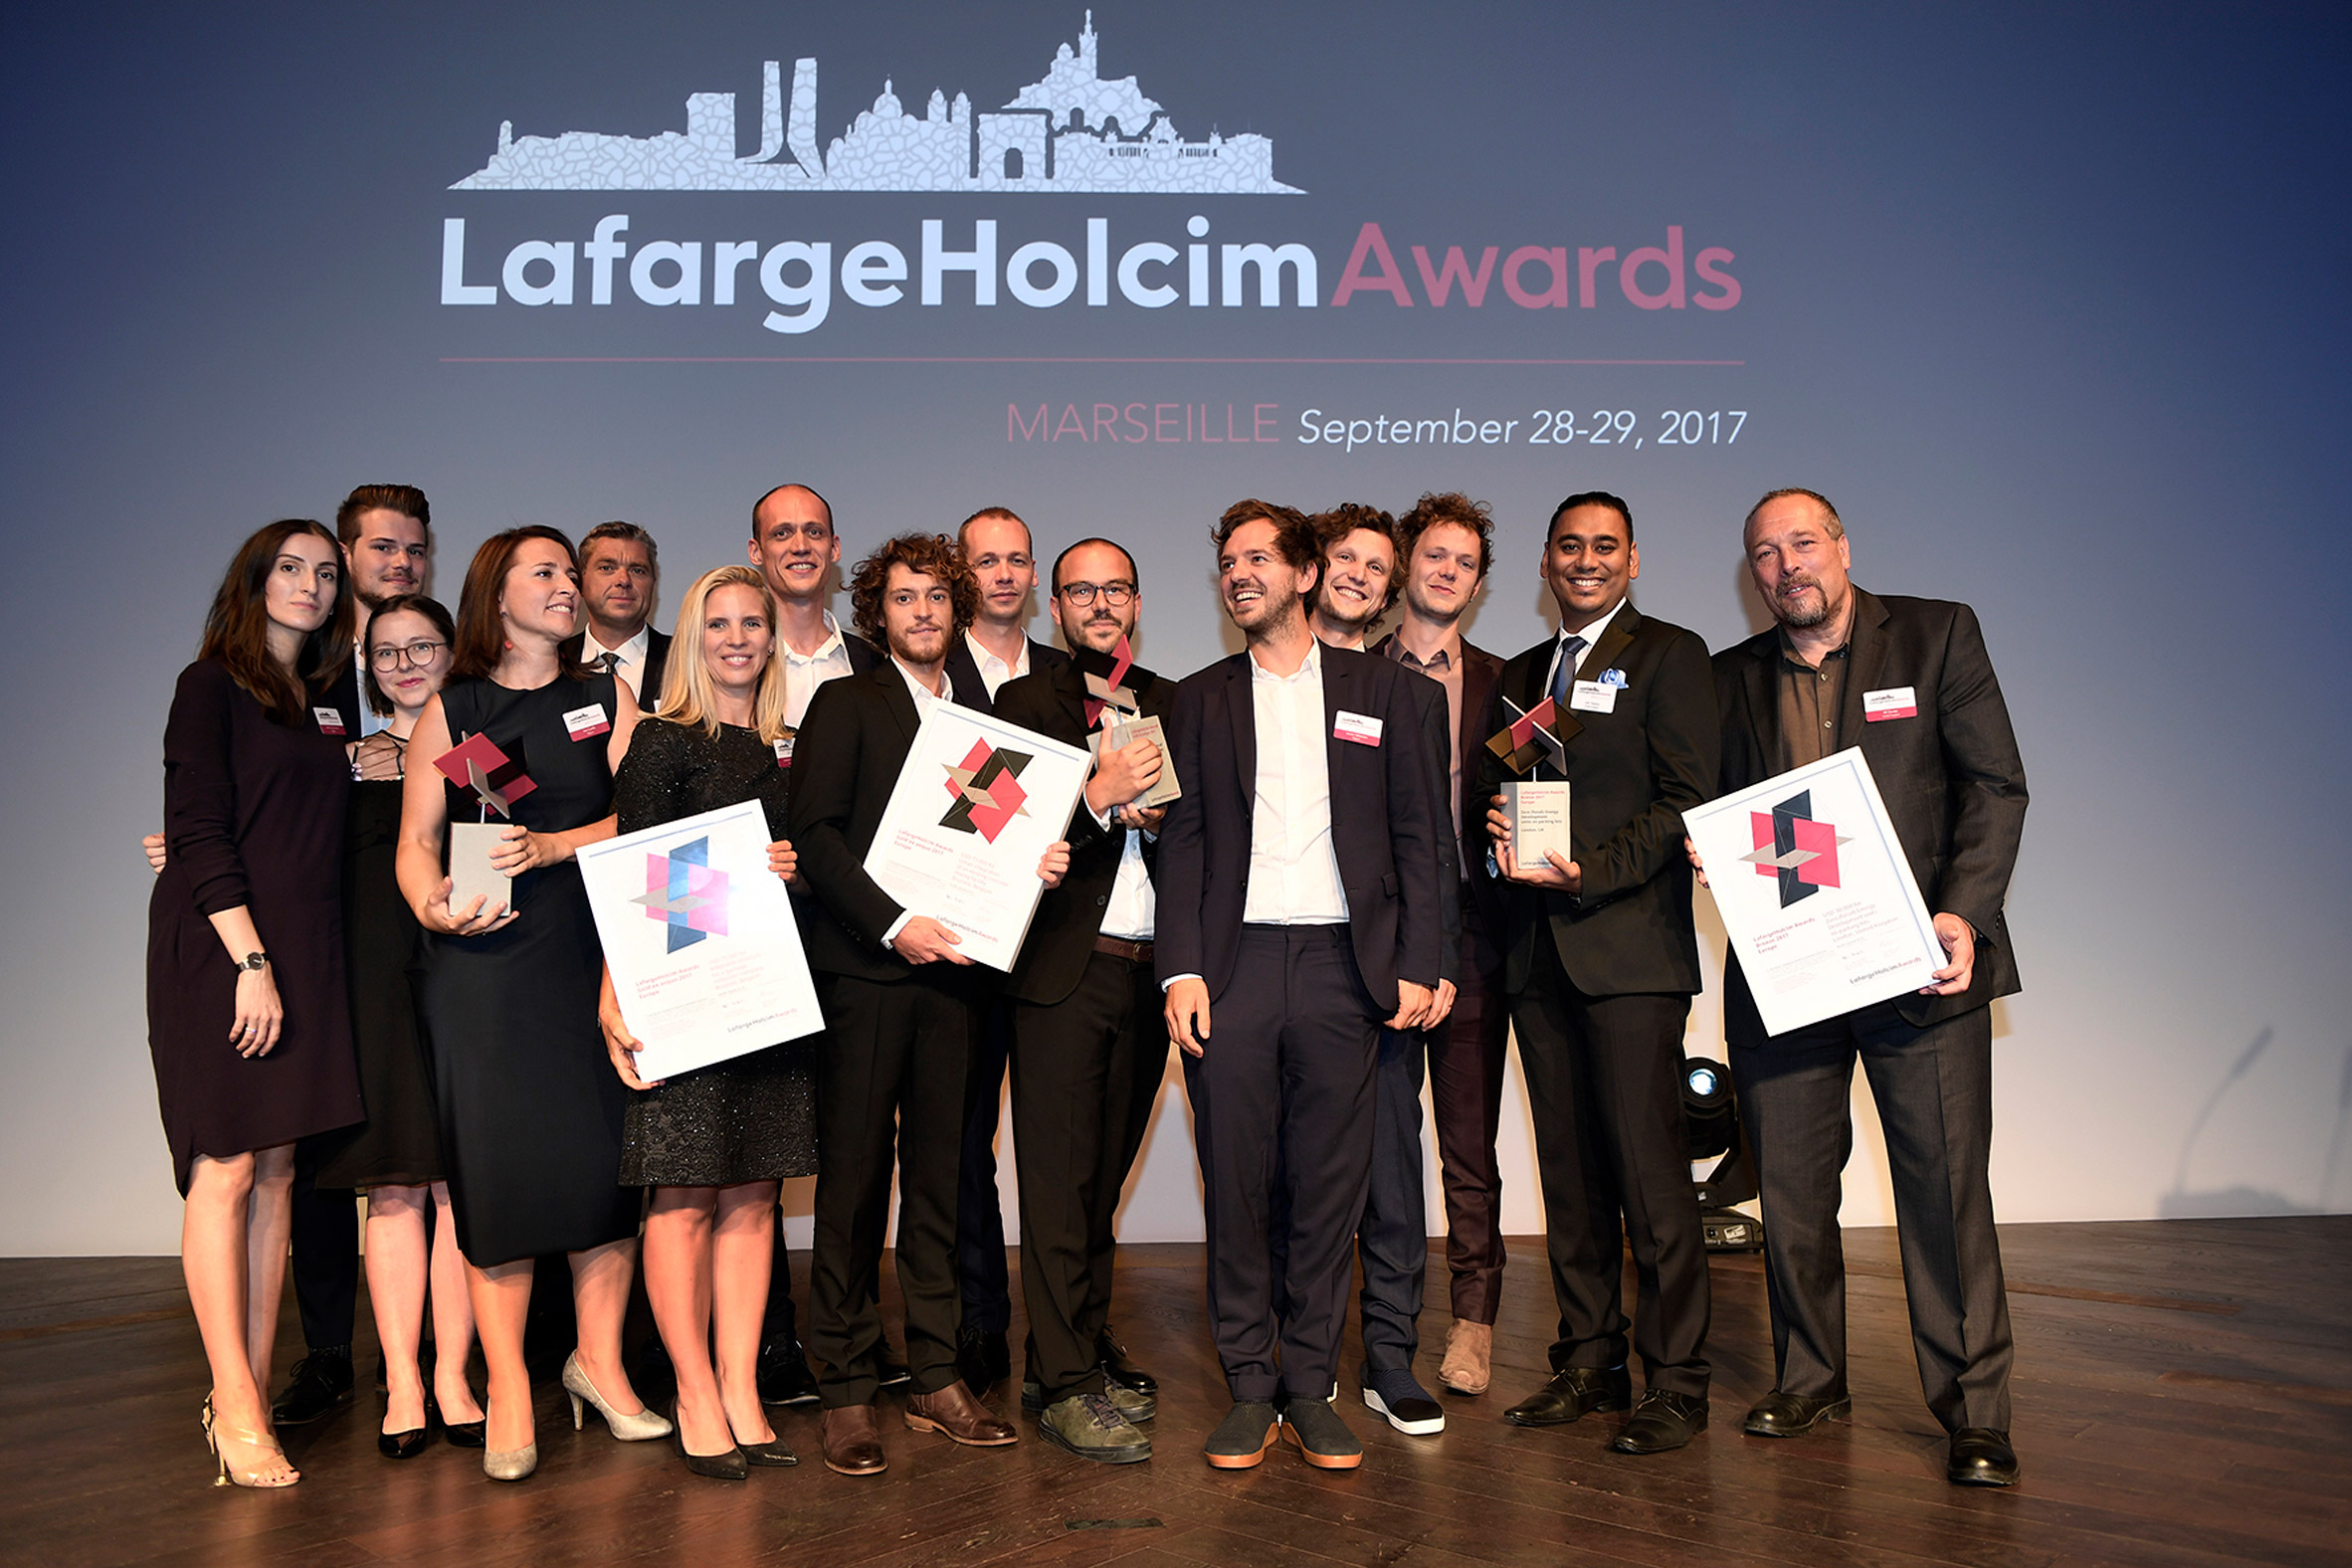 LafargeHolcim Awards